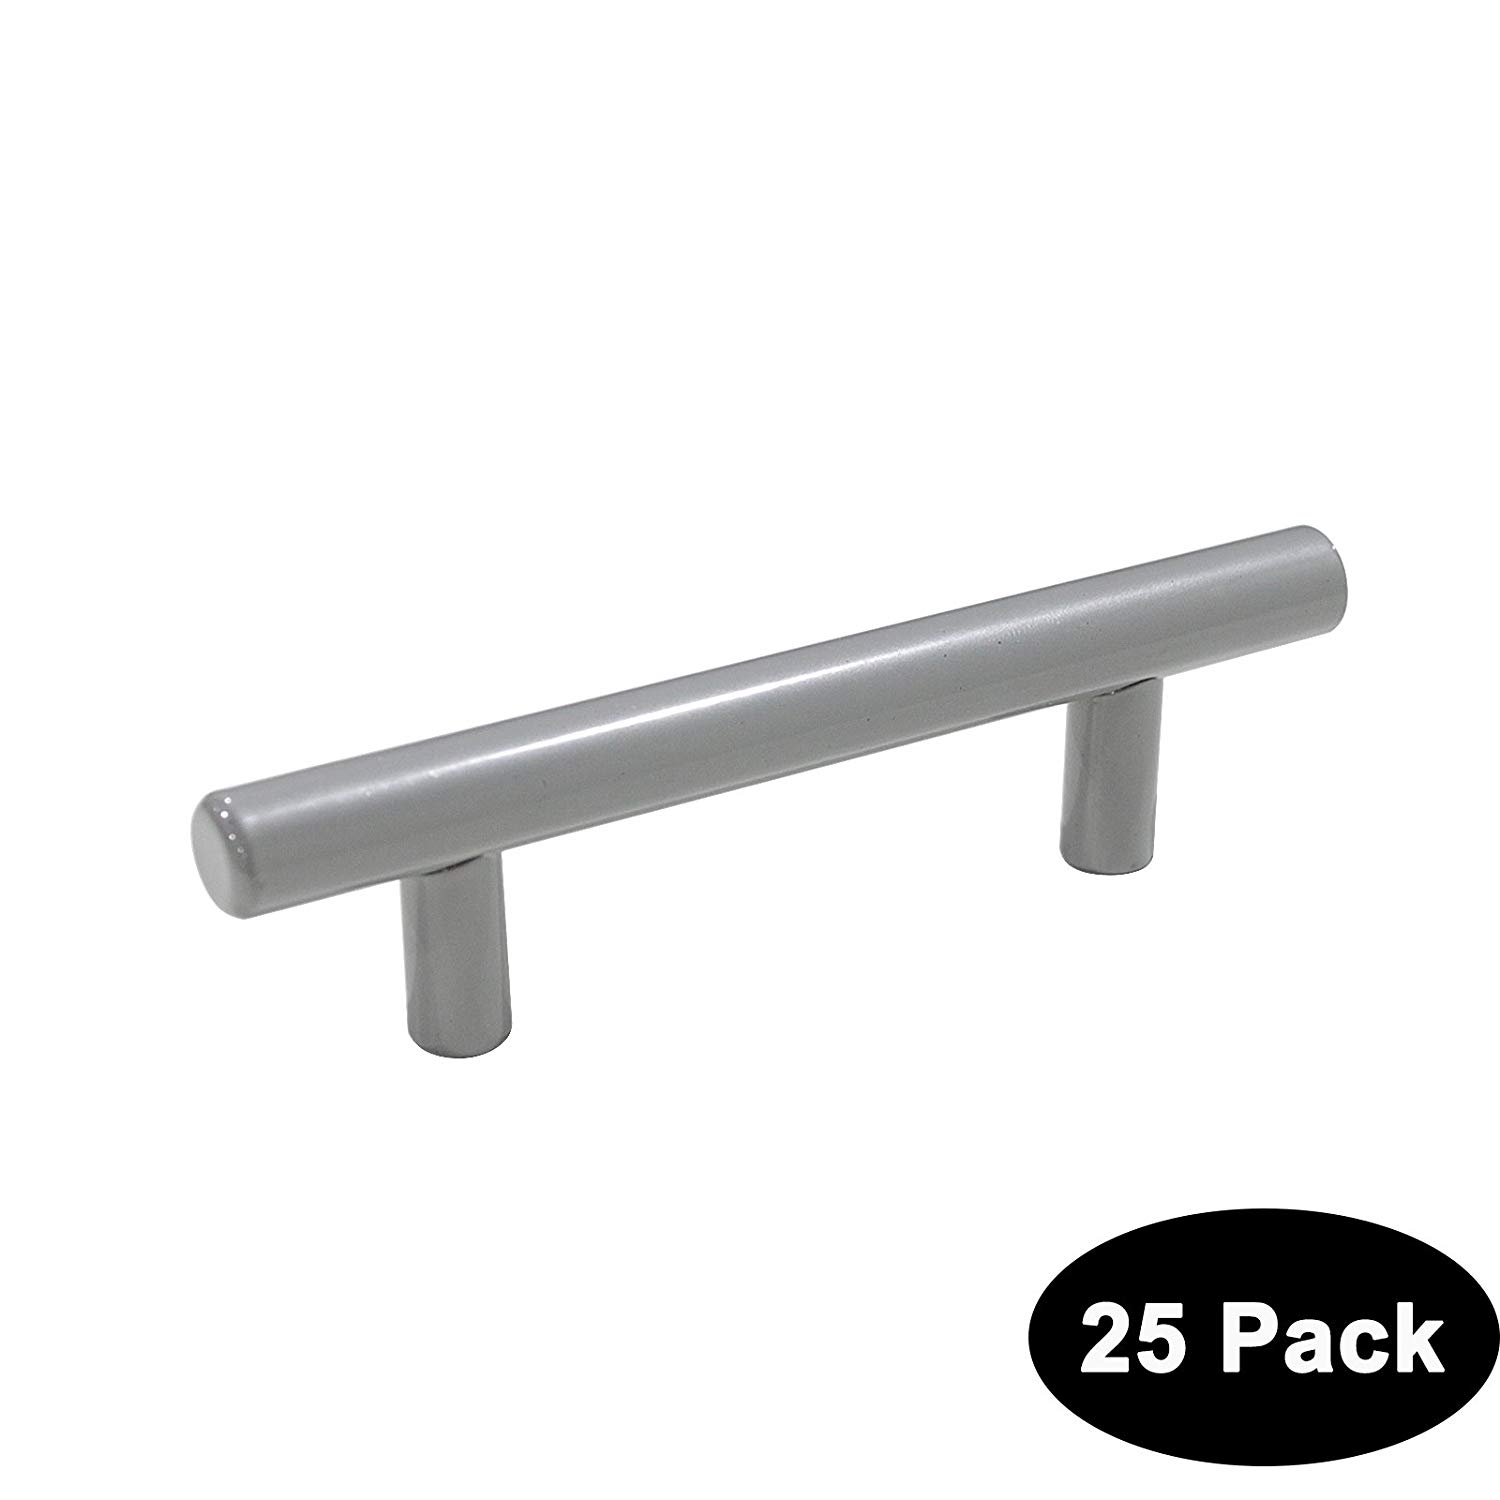 25 Pack Probrico 3inch (76mm) Hole Centers European Style Kitchen Cabinet Door Handles, Drawer Handle Pulls Kitchen Cupboard T Bar Knobs and Pull Grey 12mm Diameter Stainless Steel